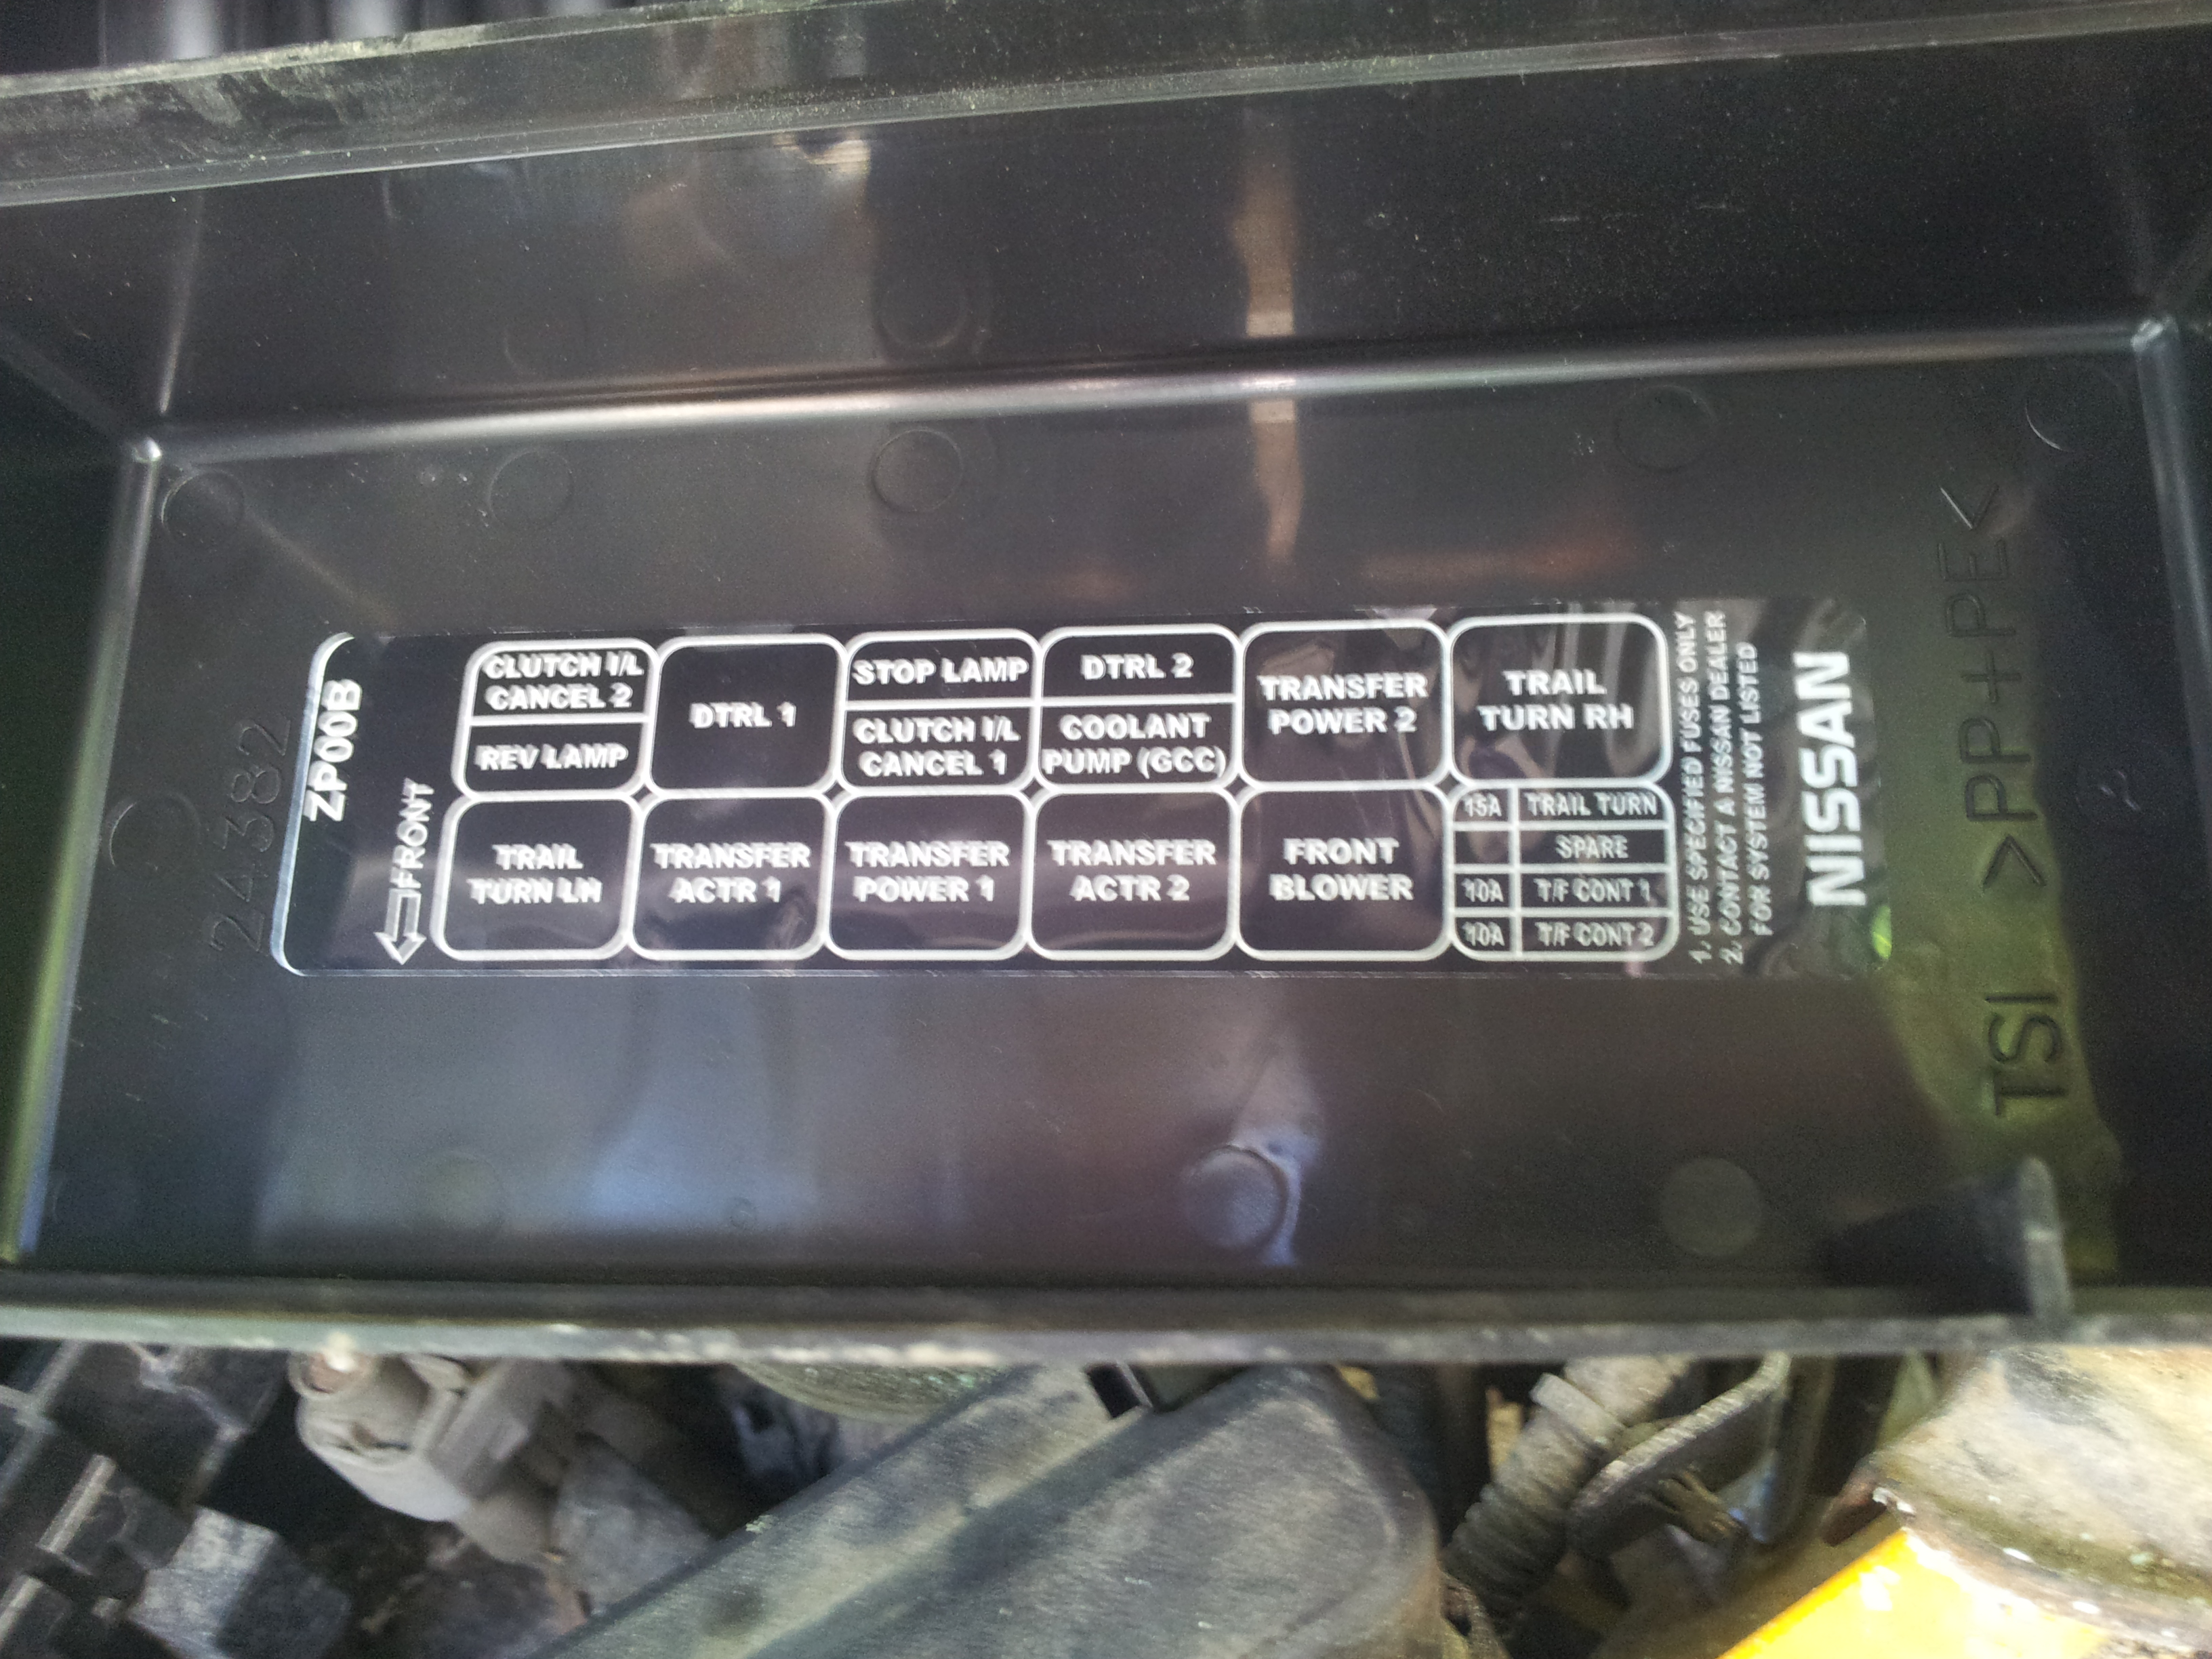 2000 Saturn Fuse Box Location Wiring Library 2007 Outlook Diagram Maxima Headlight 2004 Nissan